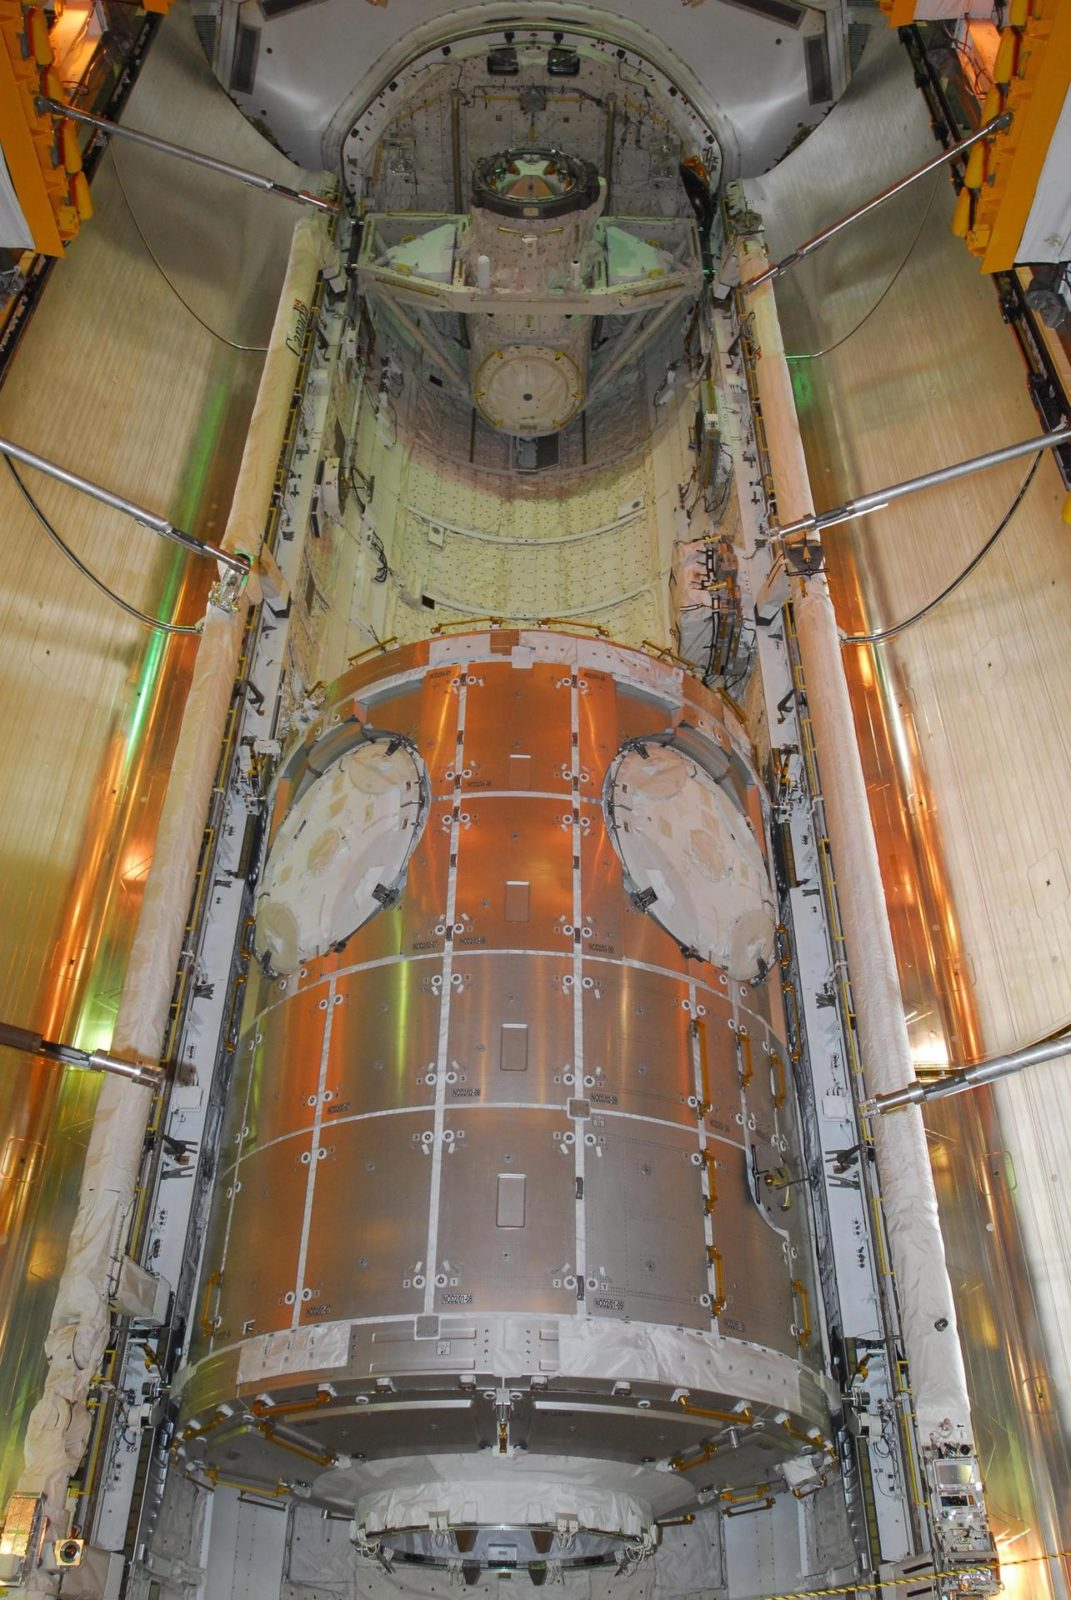 KENNEDY SPACE CENTER, FLA. -- At Launch Pad 39A, space shuttle Discovery's payload bay doors begin to close around the U.S. Node 2 module, named Harmony.  The name was chosen from an academic competition involving more than 2,200 U. S. students in kindergarten through high school. The module will be delivered to the International Space Station aboard Discovery on the 14-day STS-120 mission.  An orbiter's payload bay door closure at the pad is a milestone signaling that the launch date is near.  Discovery's launch is targeted for Oct. 23 at 11:38 a.m. EDT.  Photo credit: NASA/George Shelton KSC-07pd2821